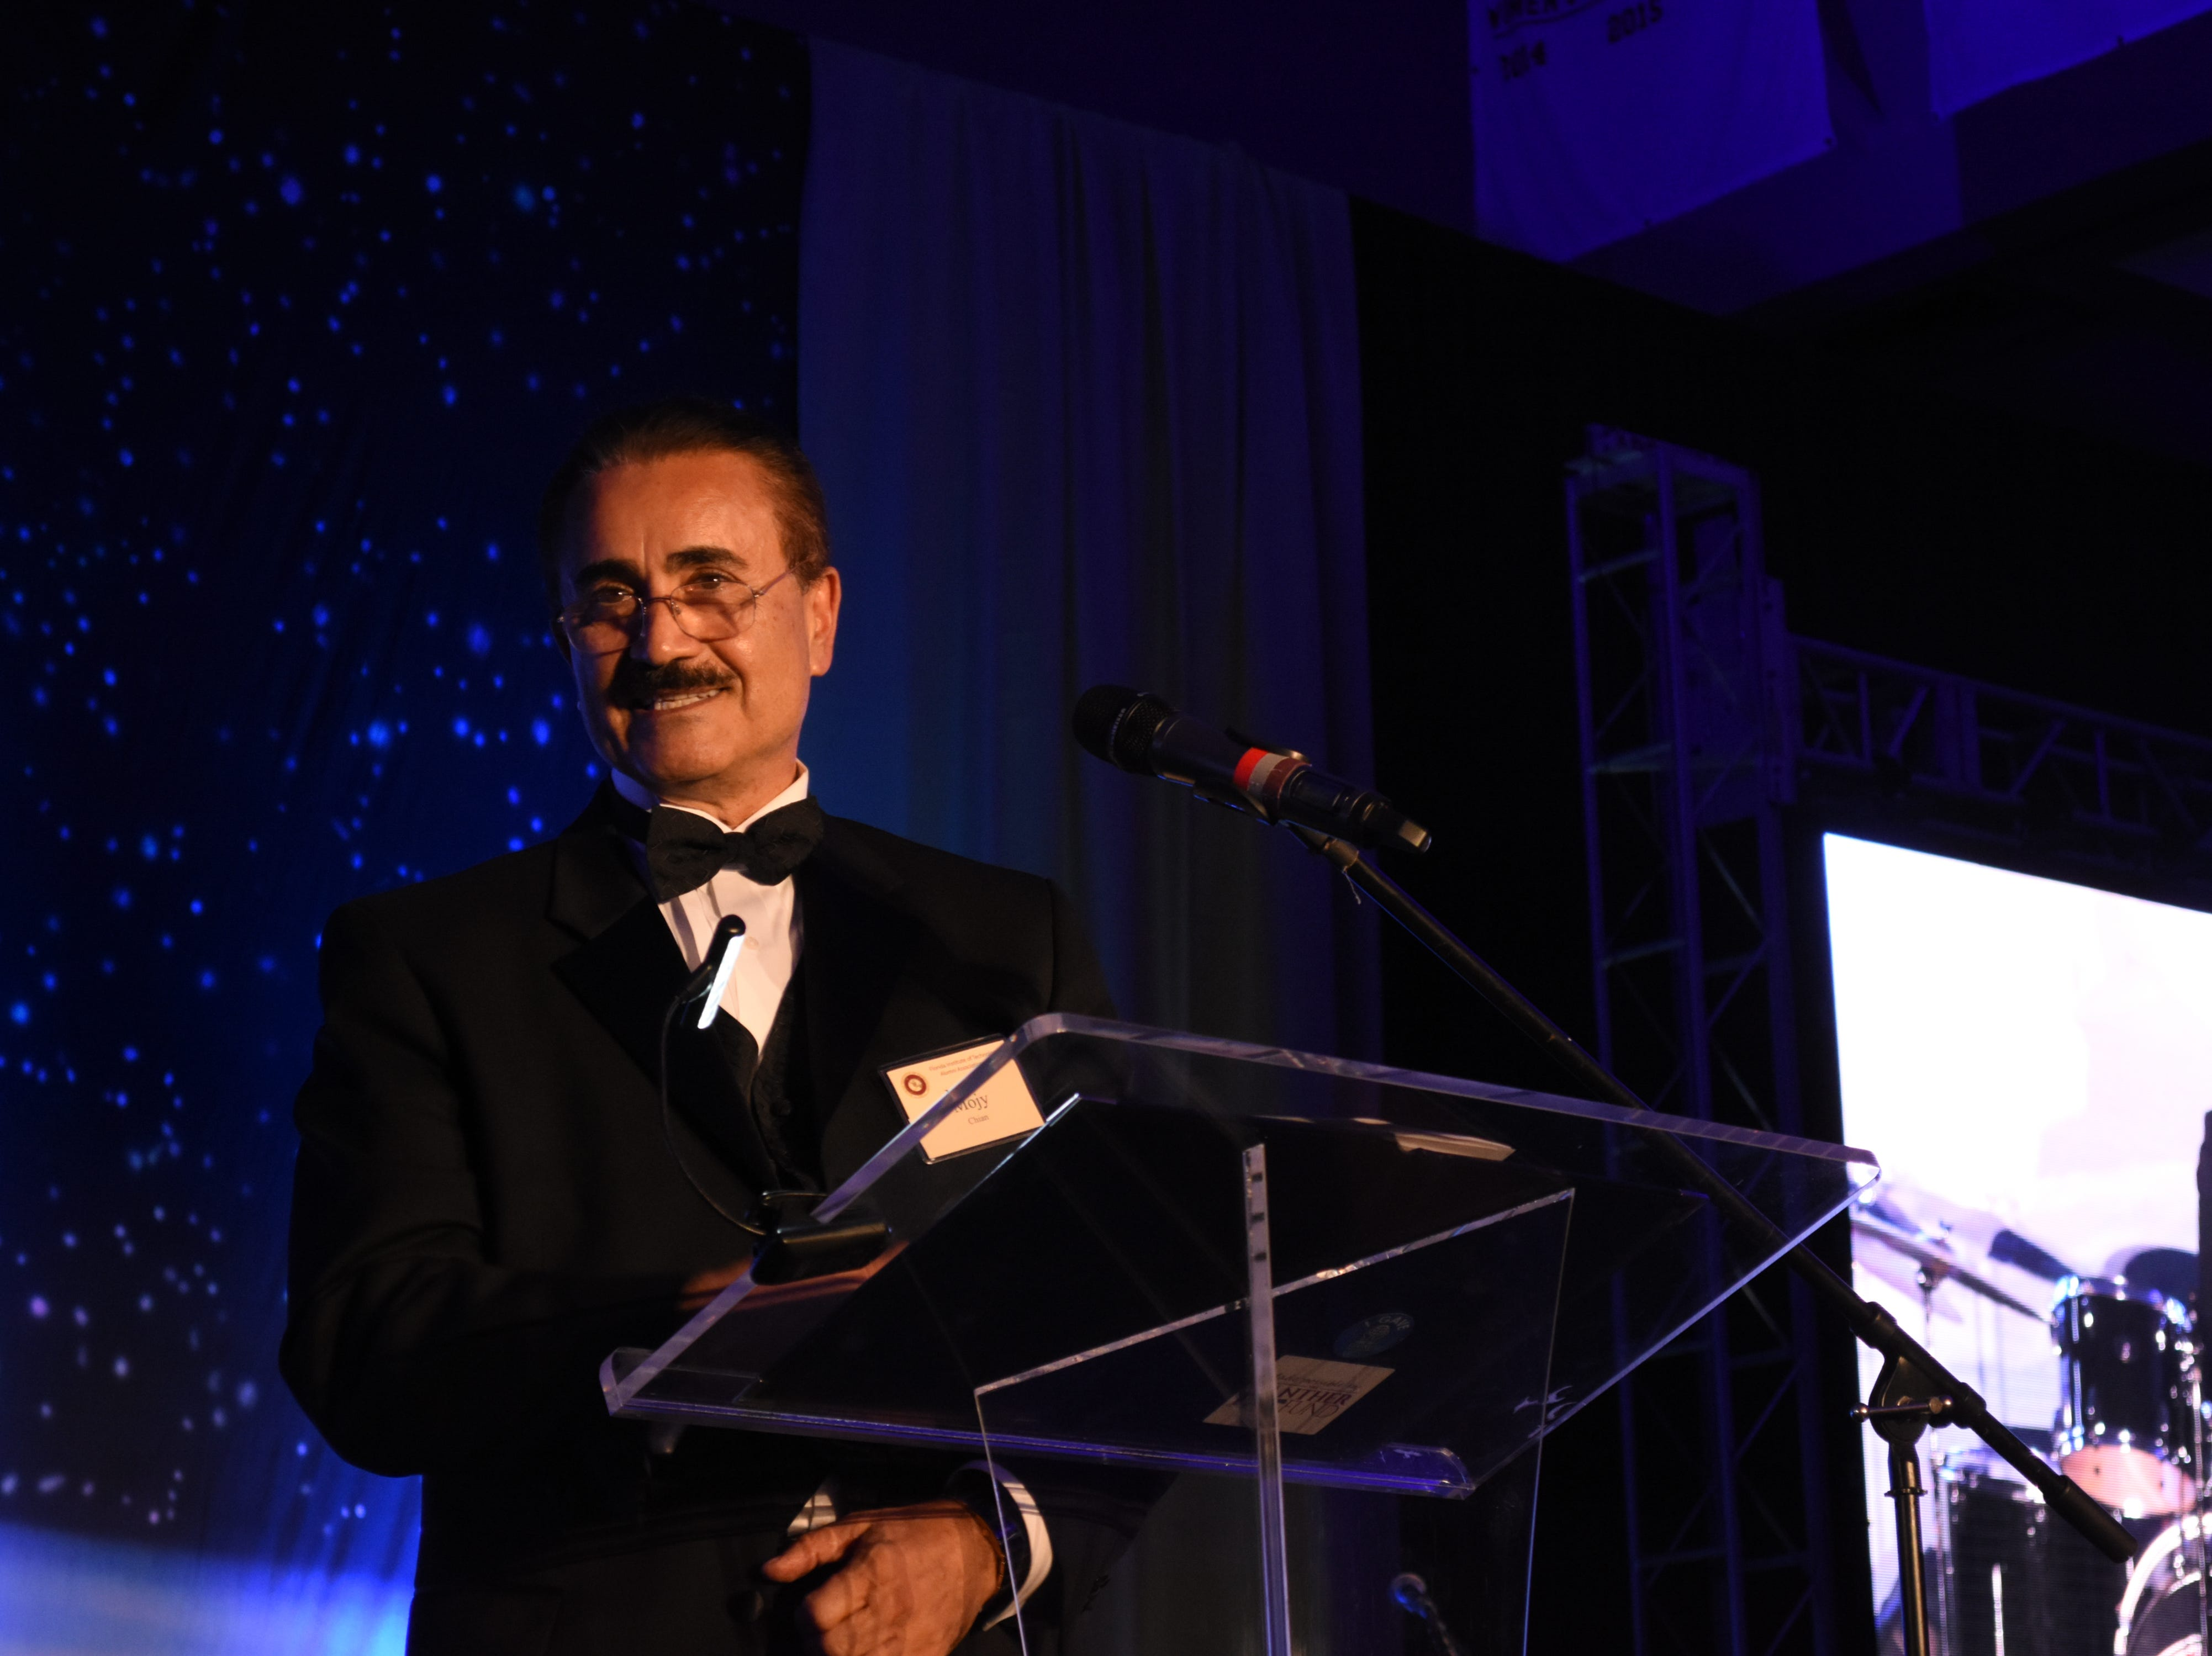 College of Engineering's Mojy Chian speaks to the crowd after receiving the Outstanding Alumni award at Florida Tech's 60th Anniversary Homecoming Gala Oct. 13, 2018, at the Clemente Center.